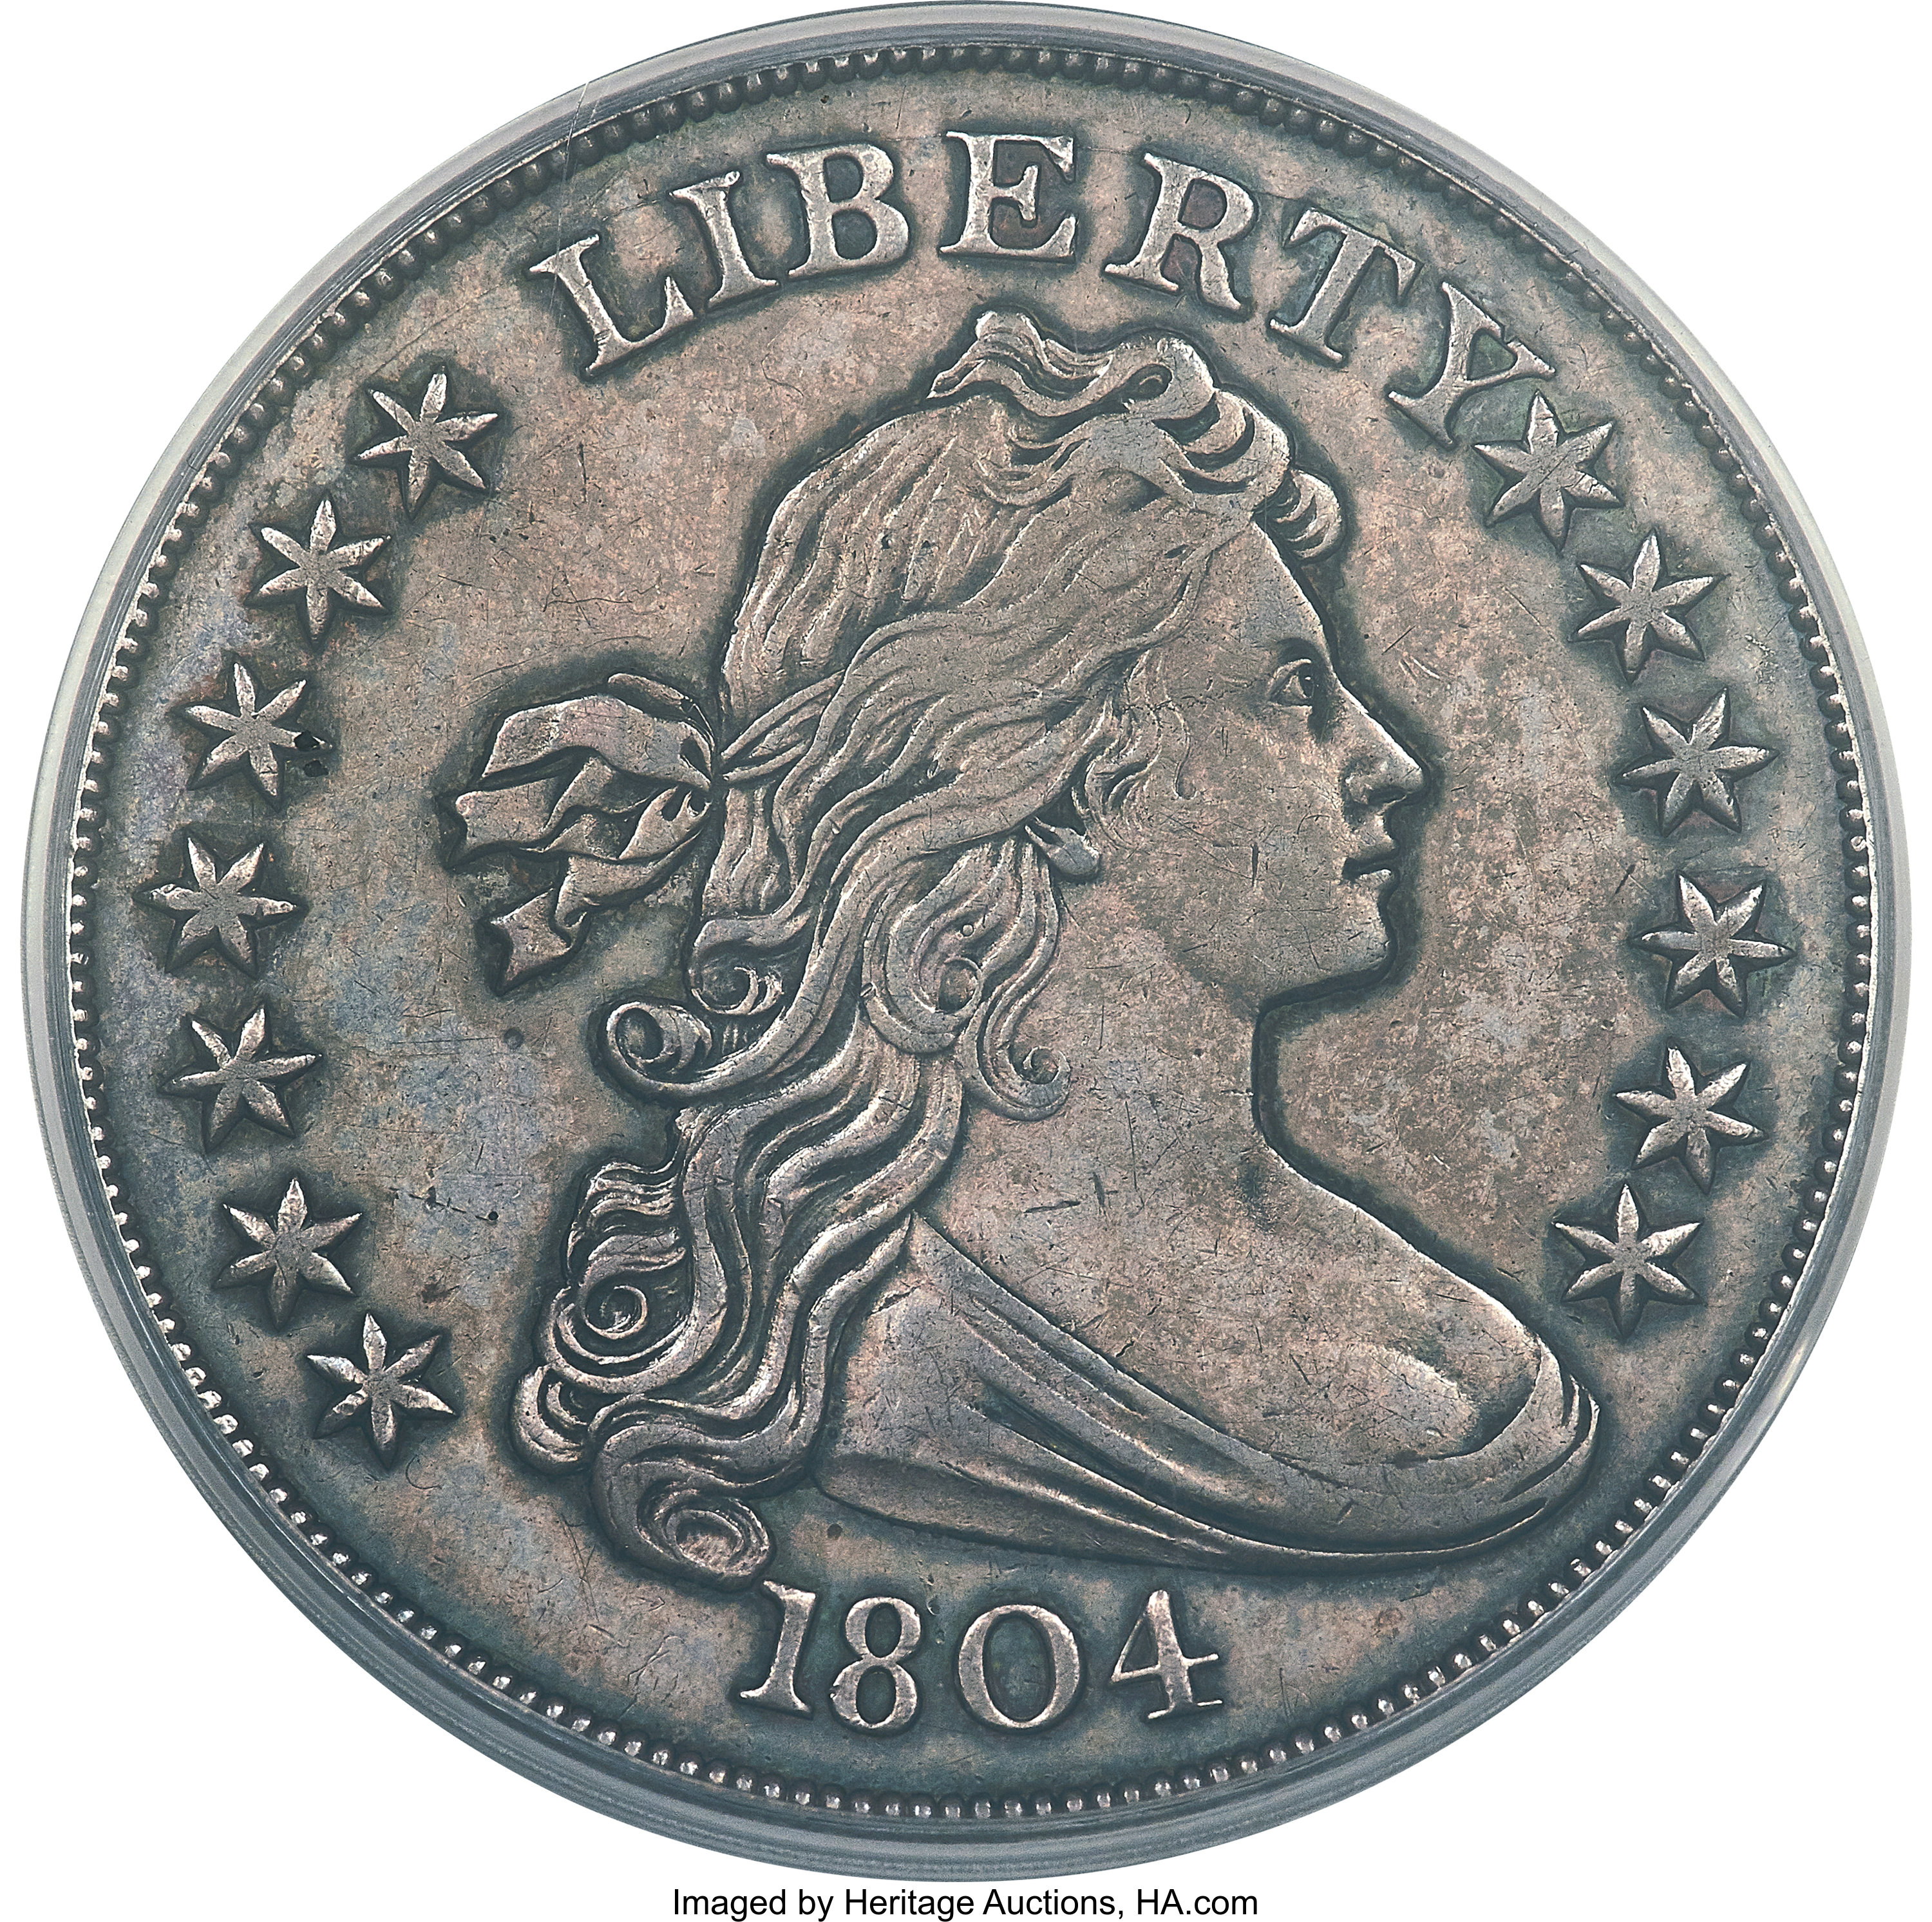 thumbnail image for Rare Coins, World Records & Special Collections Push Heritage Auctions to $826.4 Million in Sales During 2018